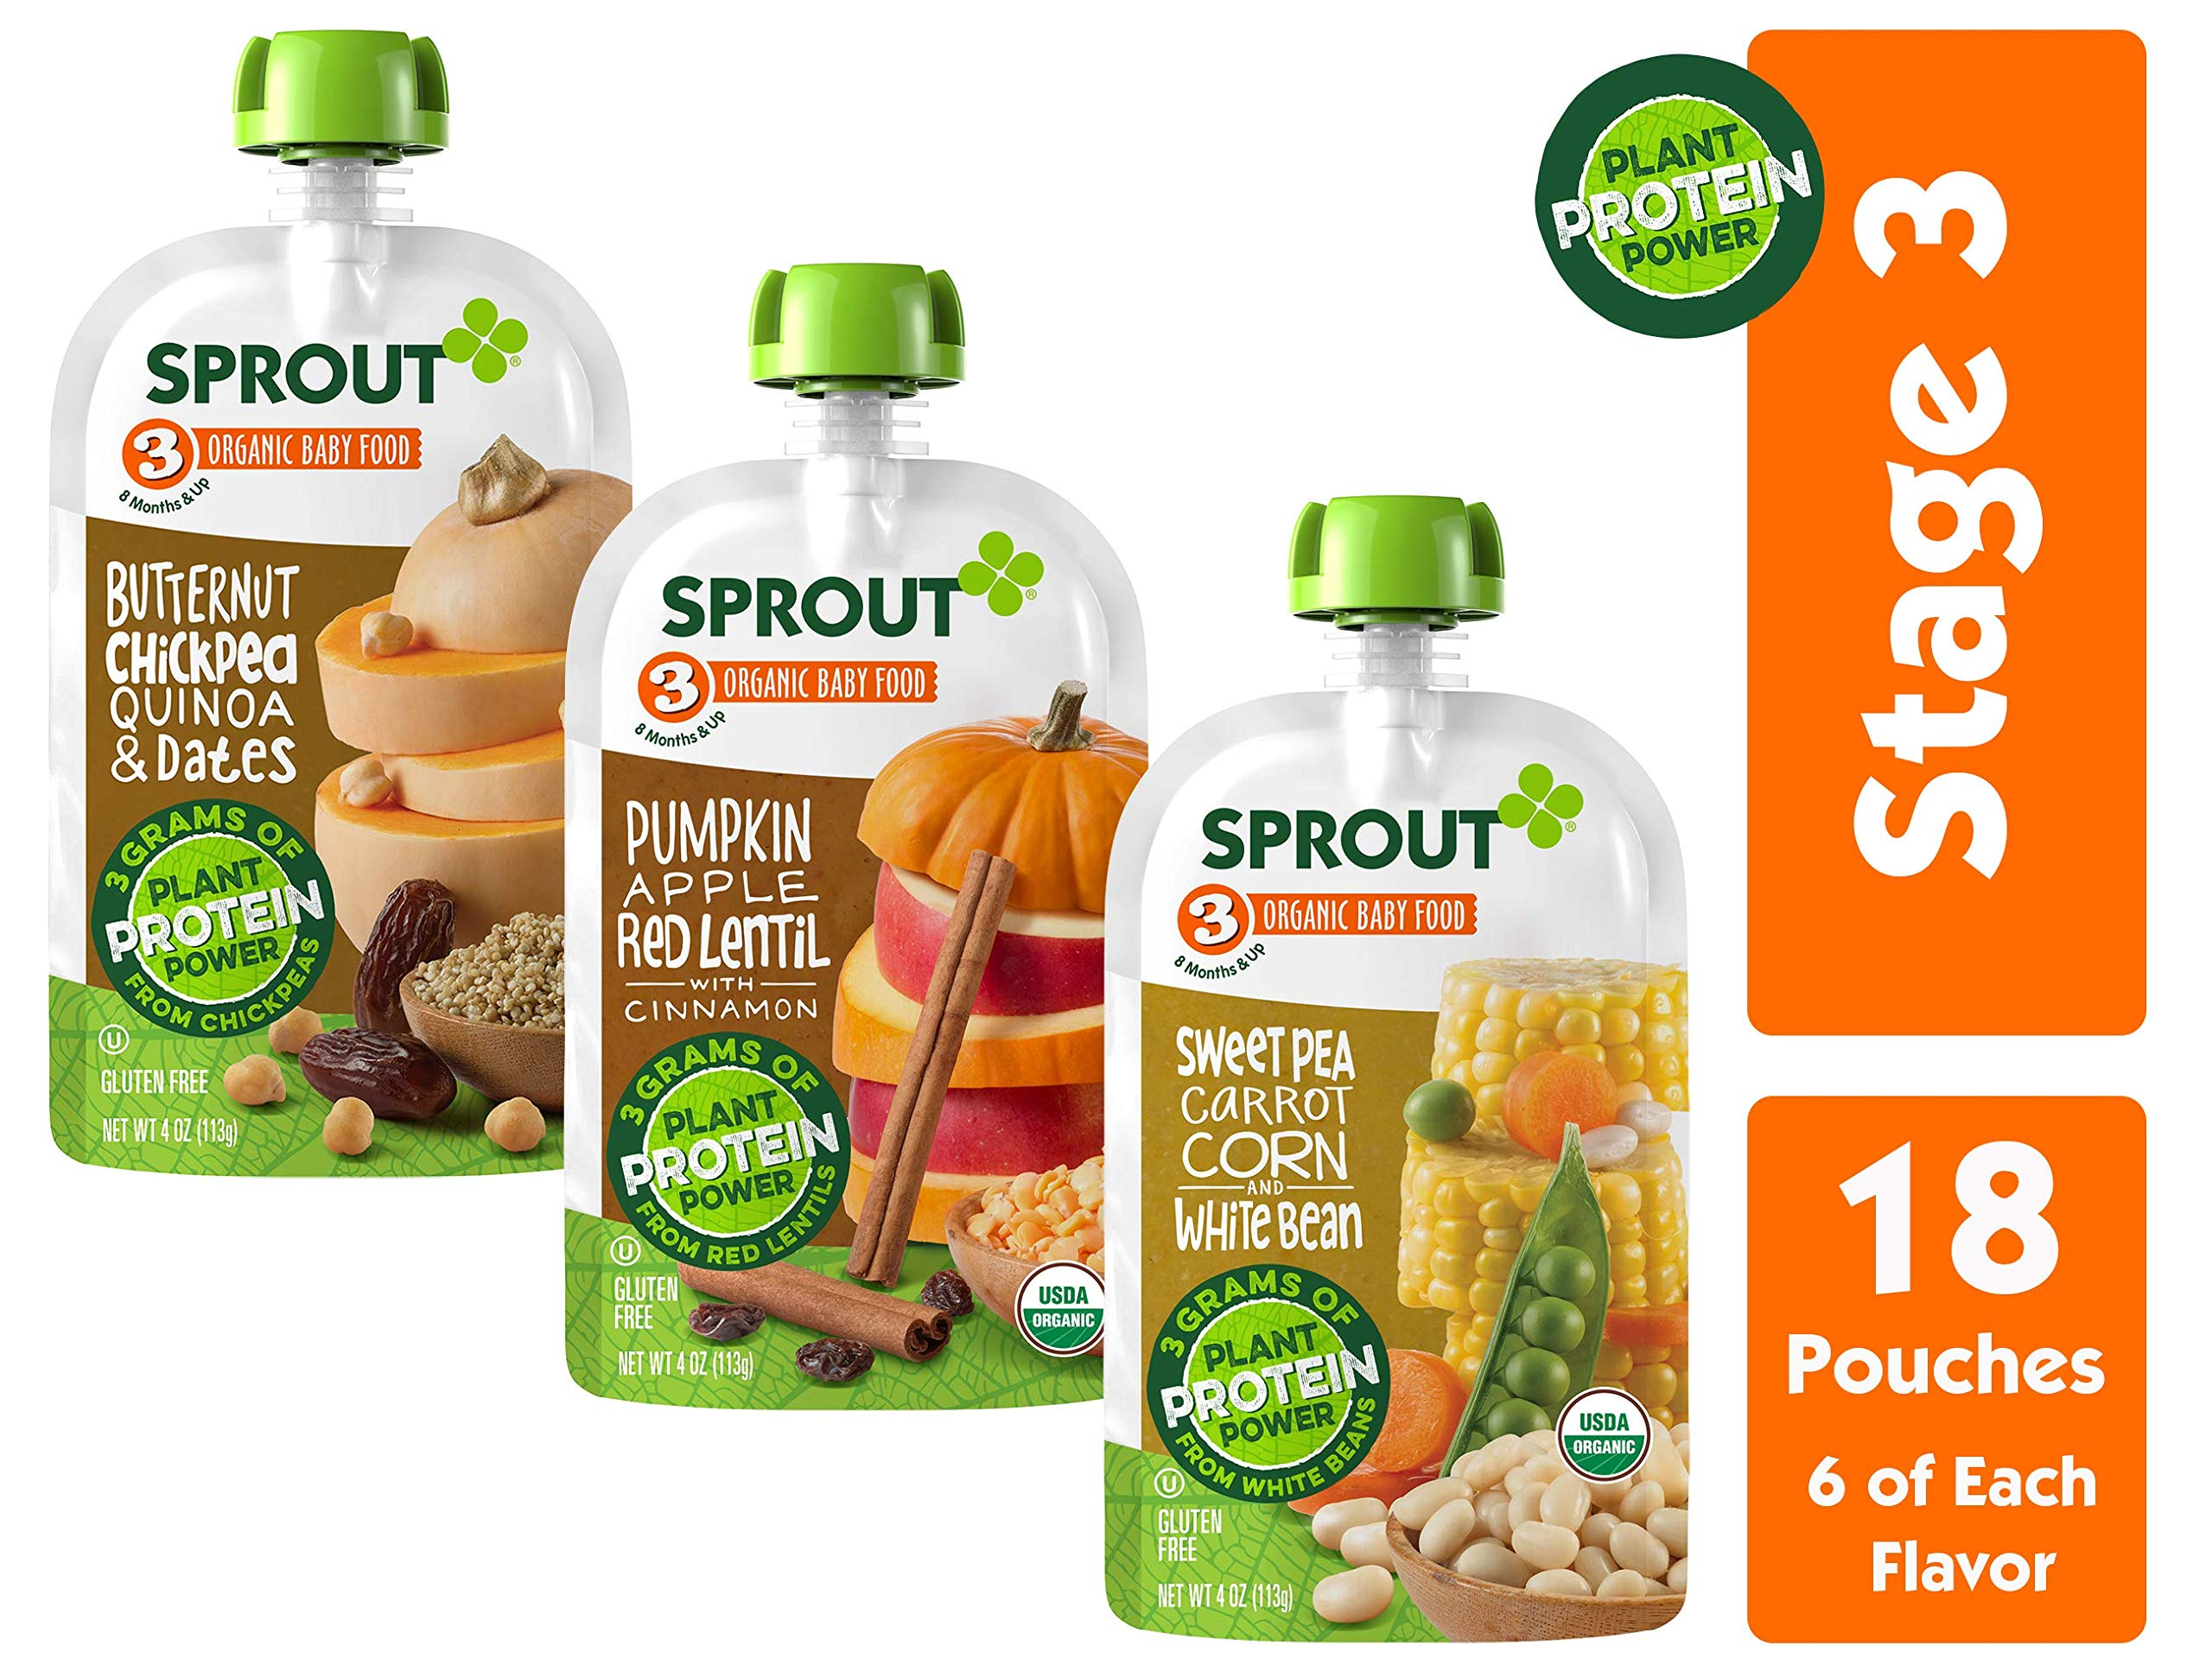 Sprout Organic Stage 3 Baby Food Pouches w/ Plant Powered Protein, Variety Pack, 4 Ounce (Pack of 18) 6 of Each: Butternut Chickpea Quinoa Date, Pumpkin Apple Lentil & Sweet Pea Corn Carrot White Bean by Sprout